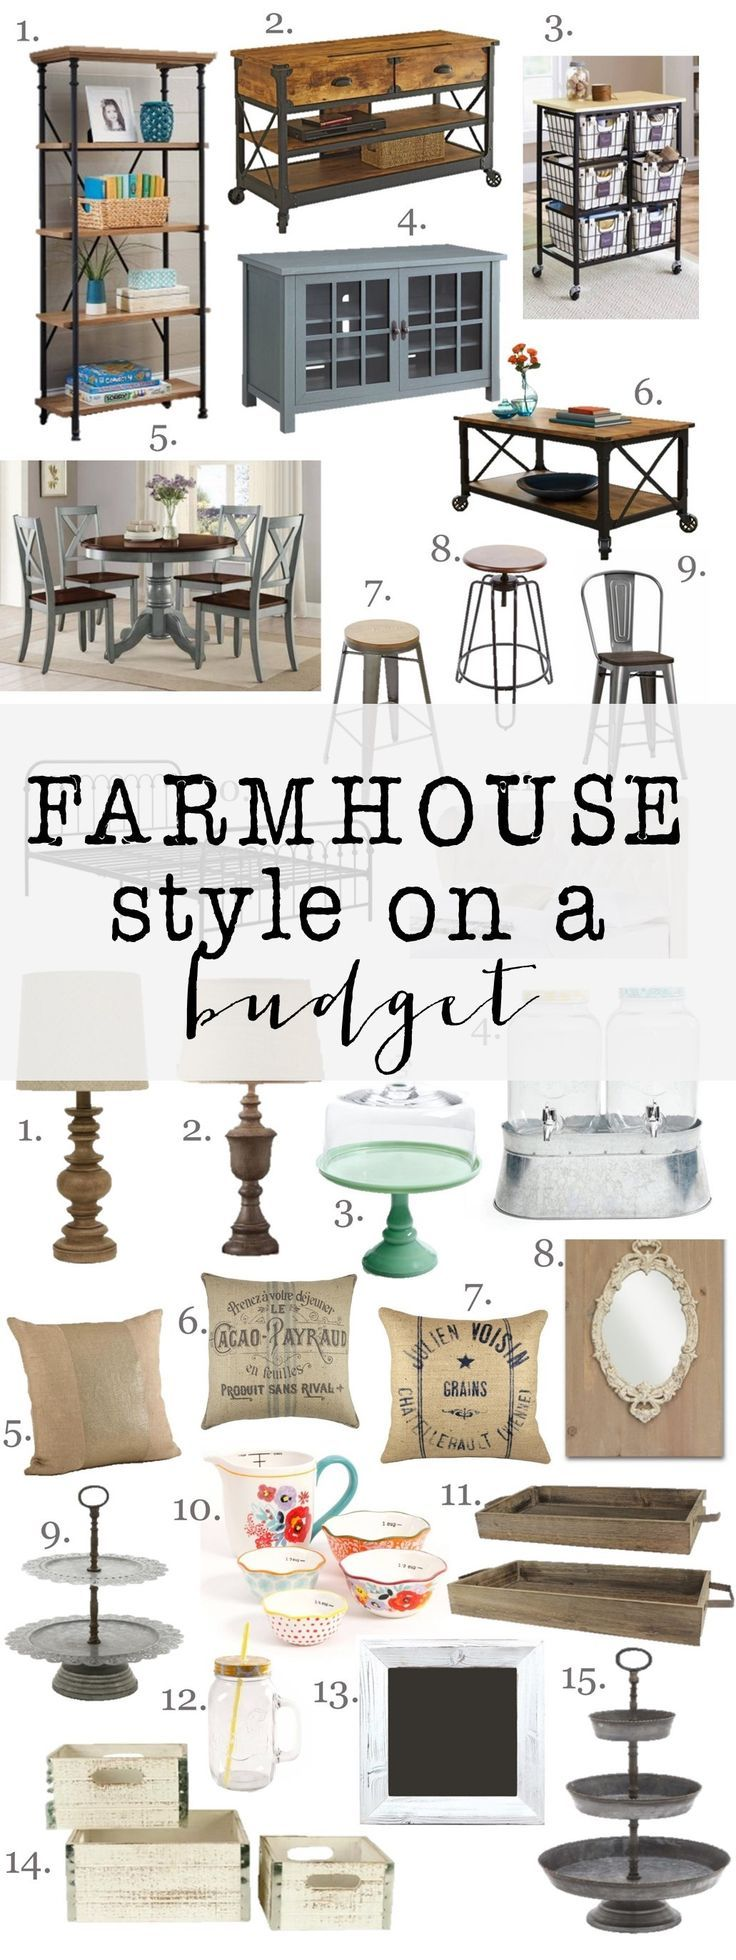 farmhouse style on a budget on love the farmhouse look but on a budget check out all these amazing finds for incredible prices m farmhouse style furniture home decor farm house living room farmhouse style furniture home decor